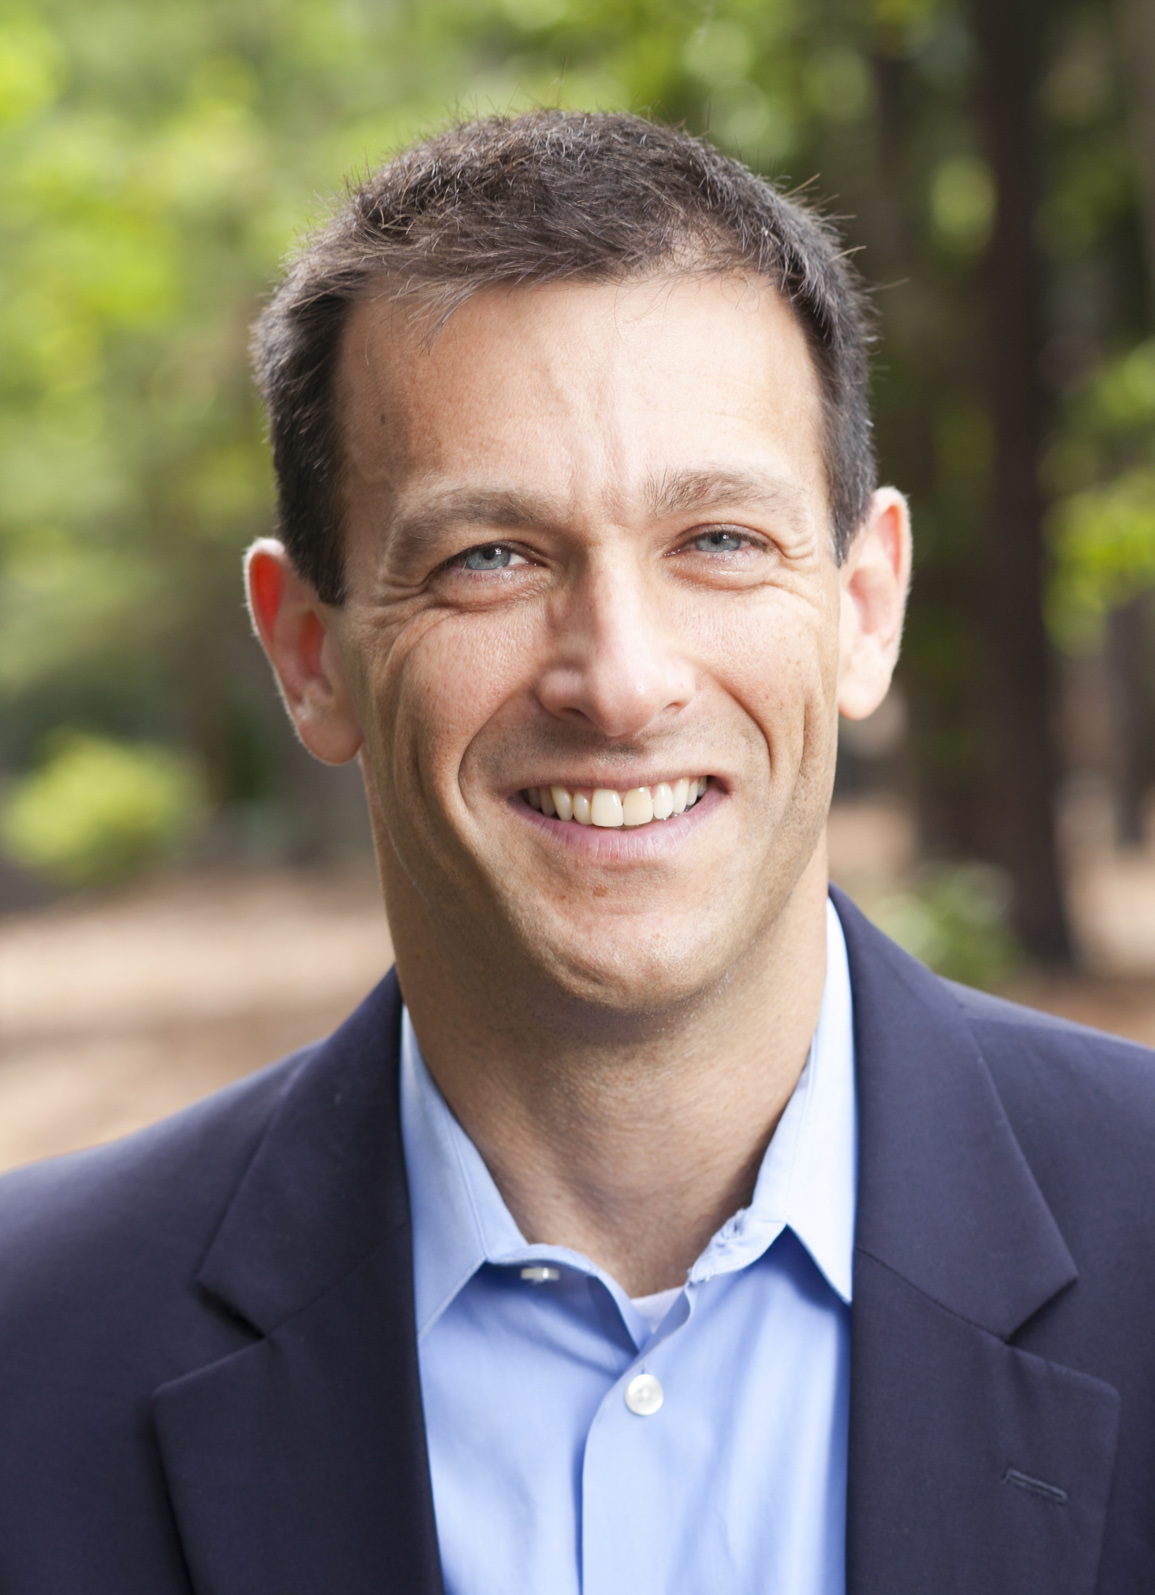 Image Credit: Duke Law School